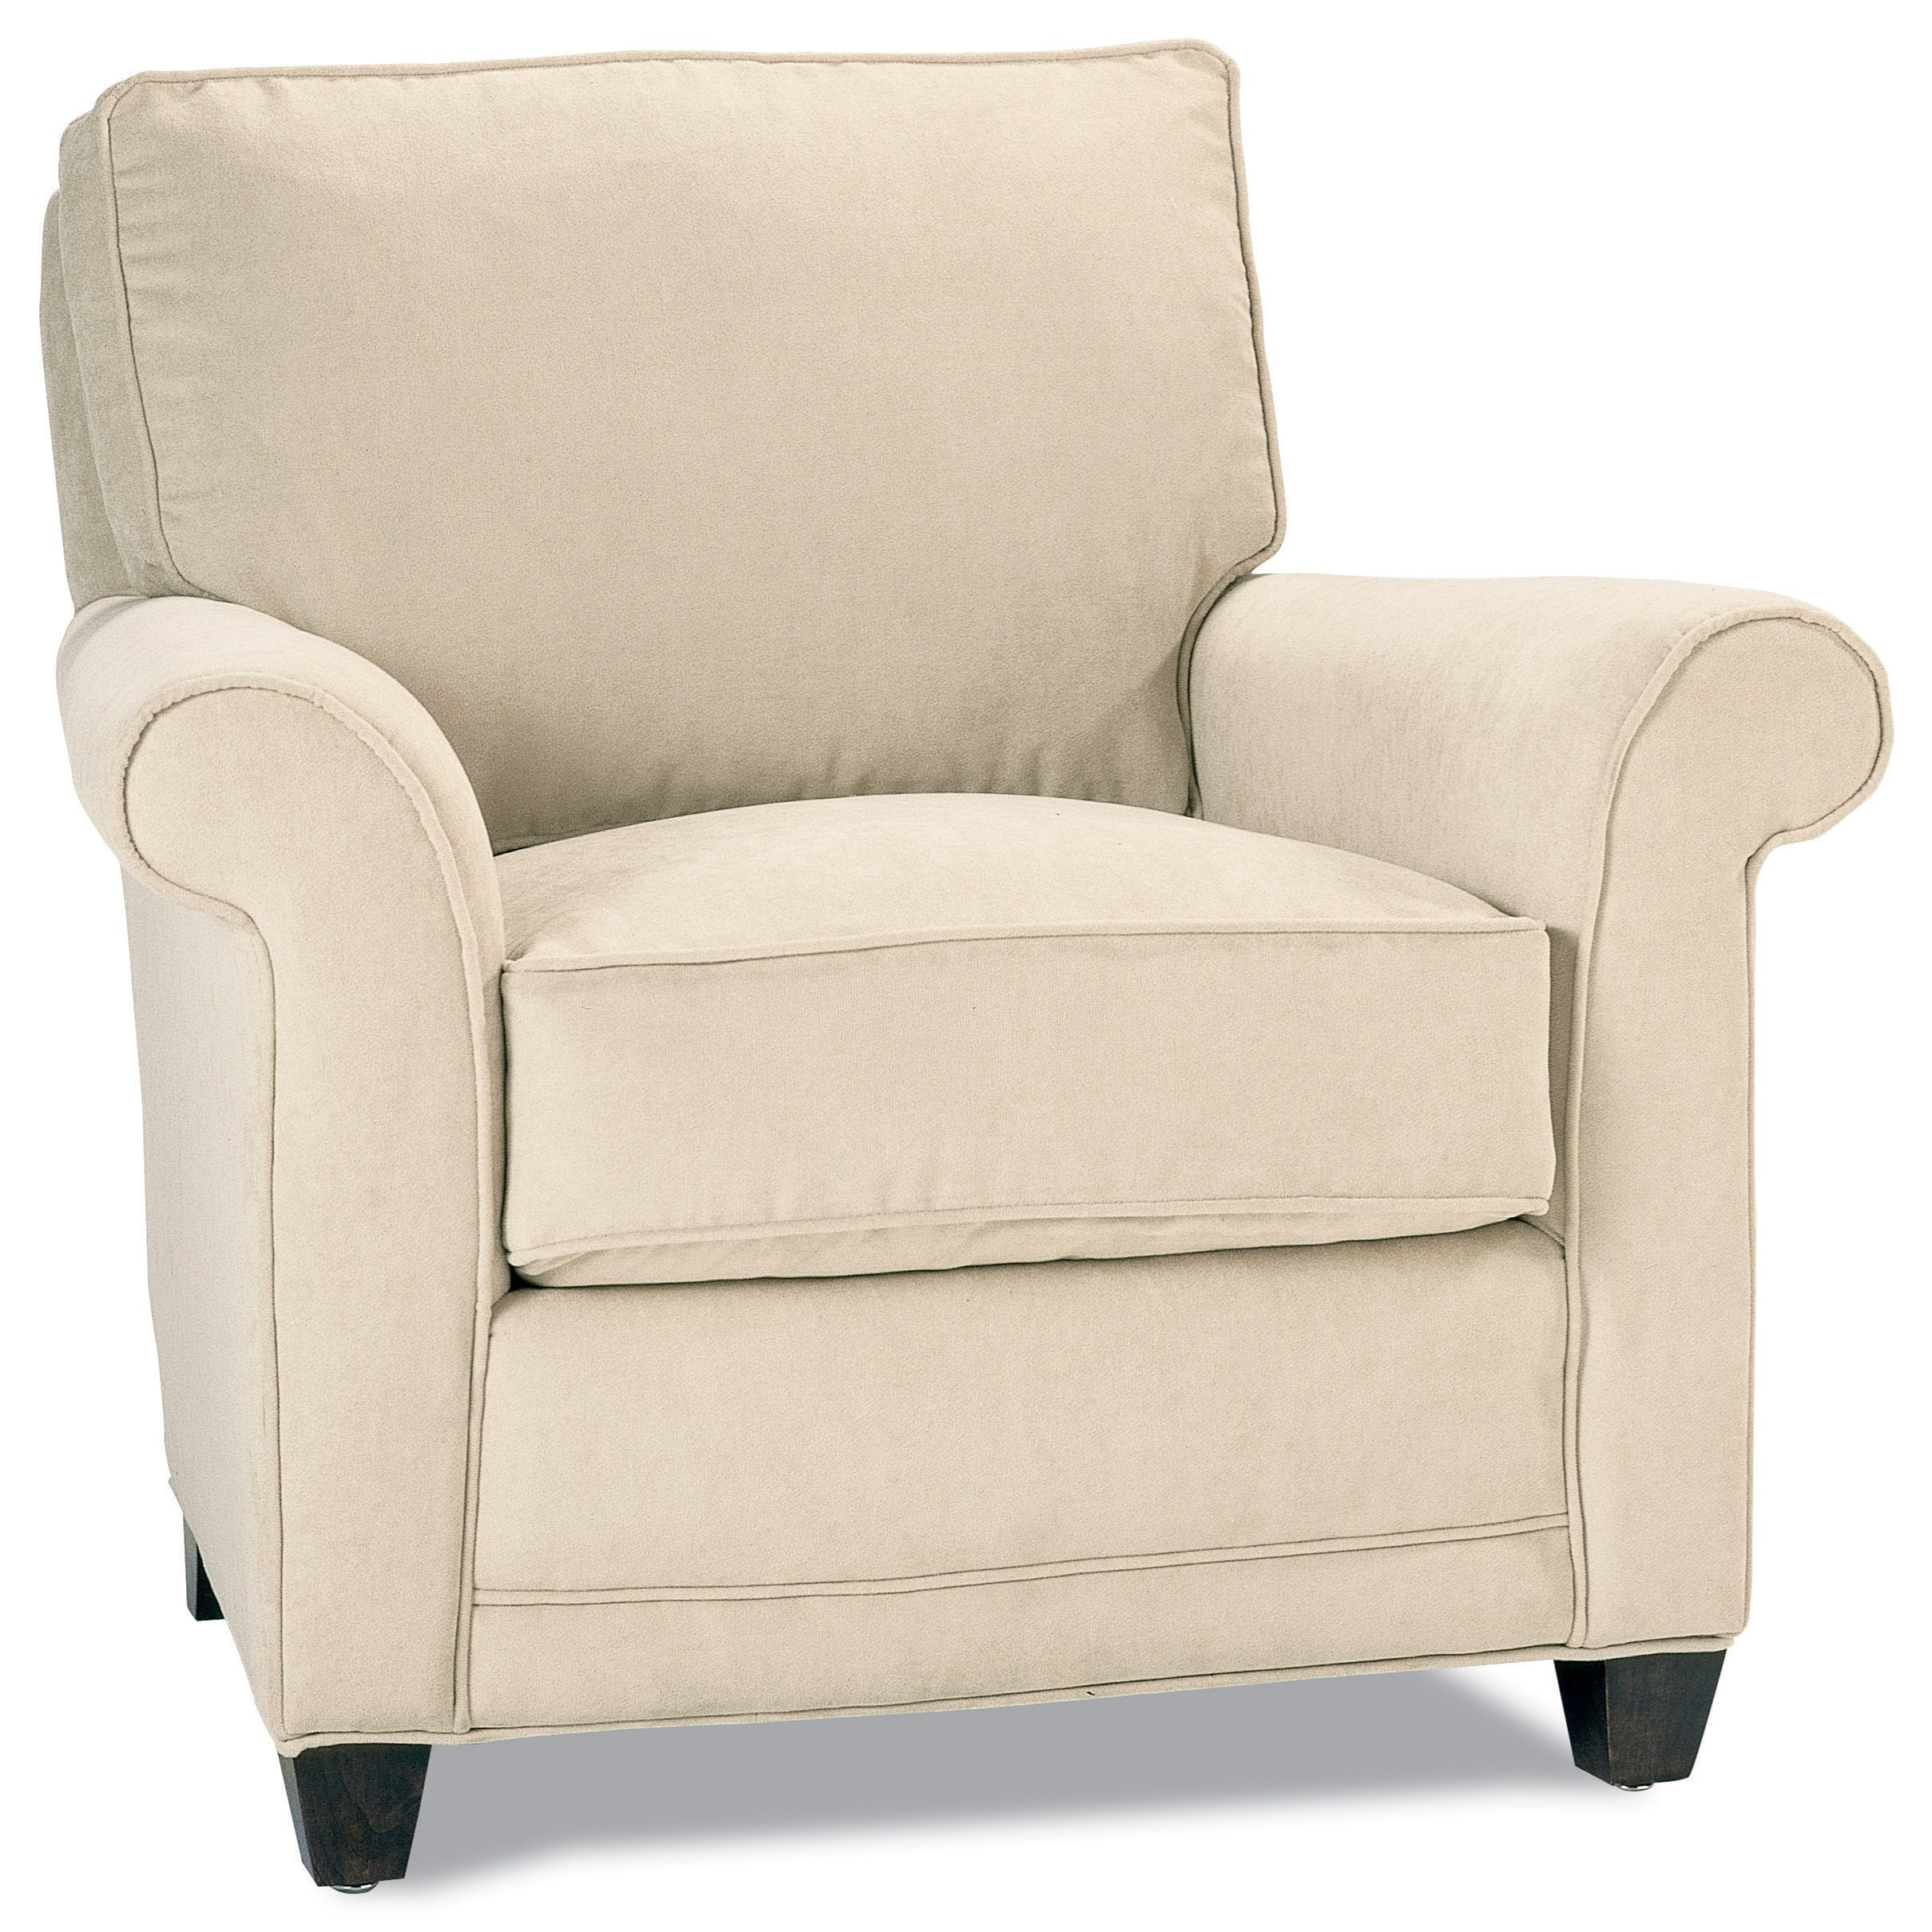 Chairs and Accents Mayflower Chair by Rowe at Saugerties Furniture Mart